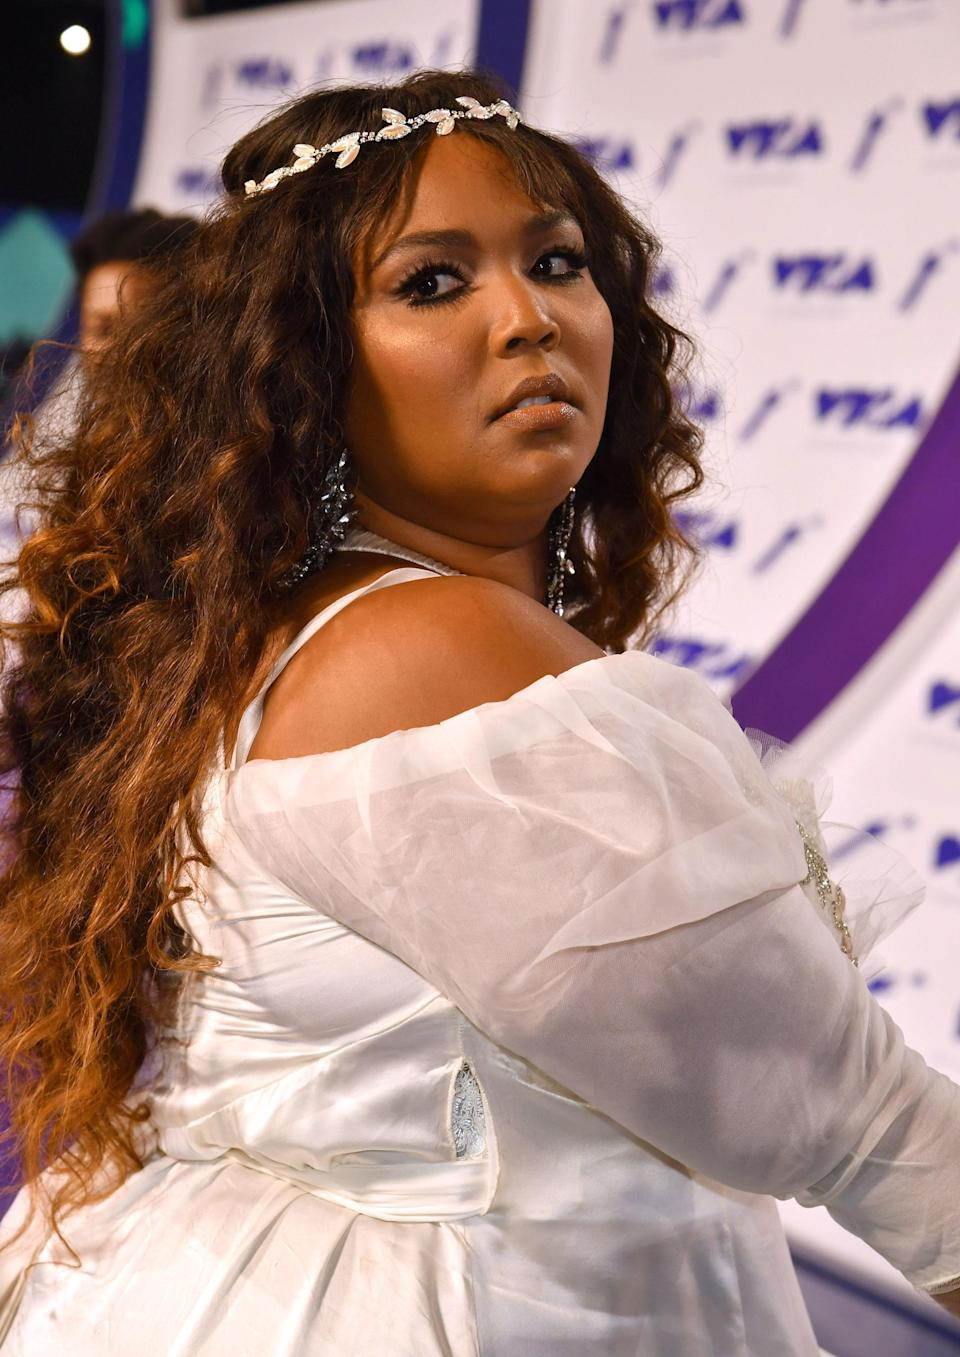 We've always known that Lizzo was rap royalty, but this VMAs look just proved it.